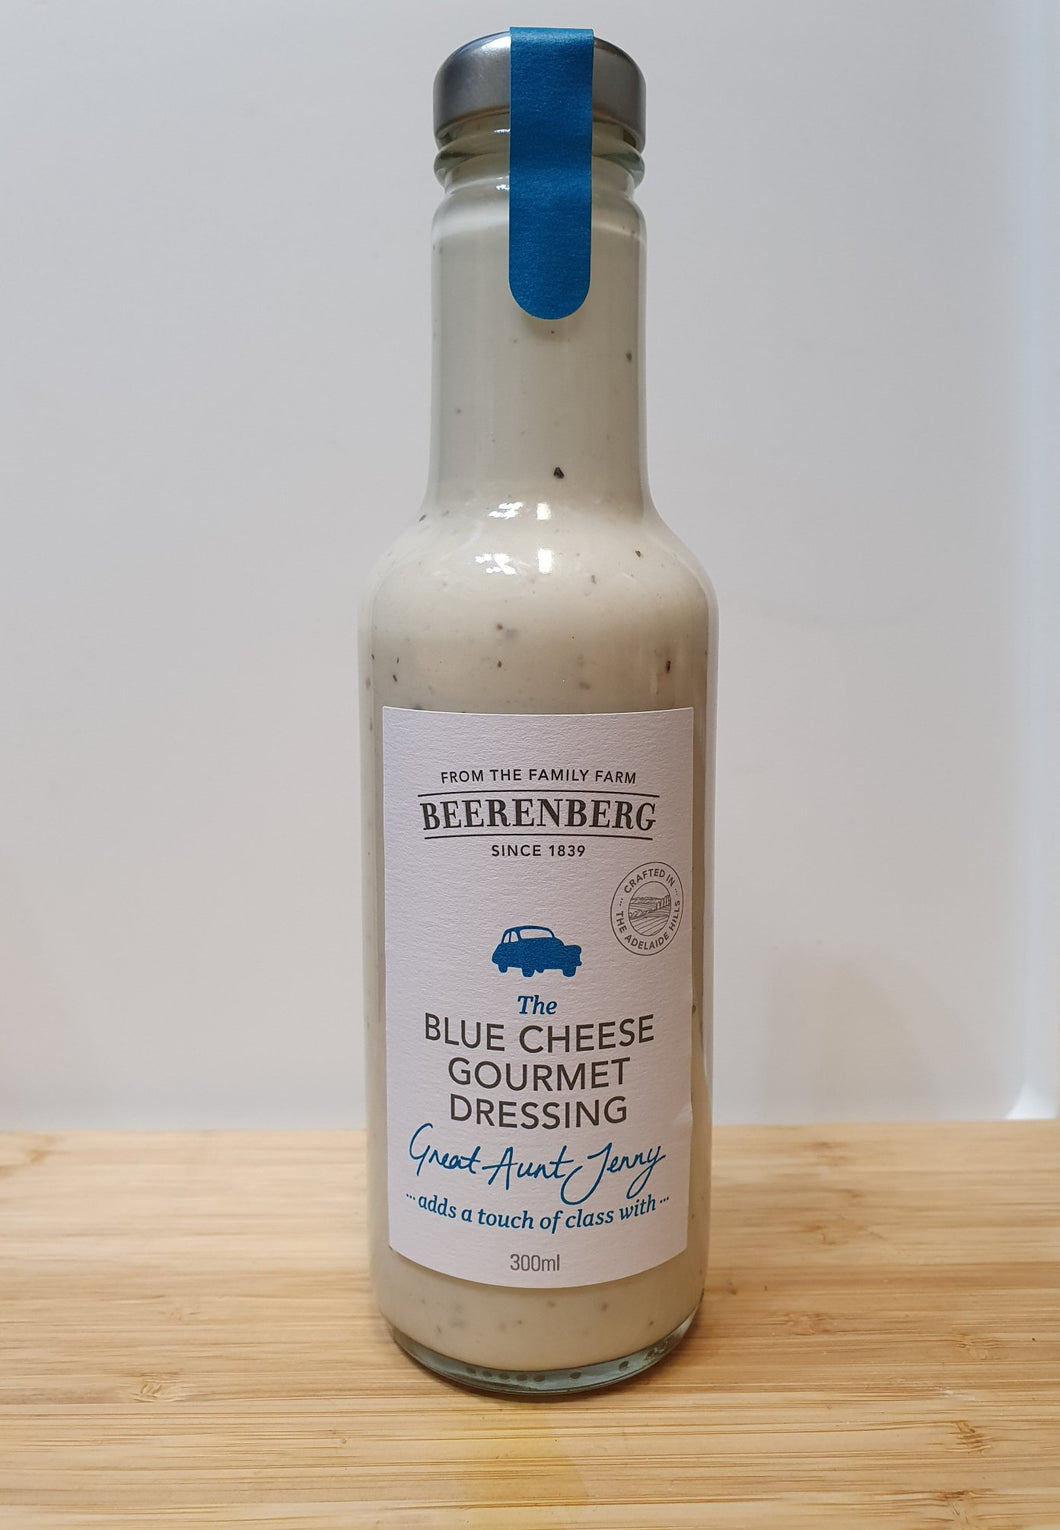 Beerenberg Blue Cheese Gourmet Dressing